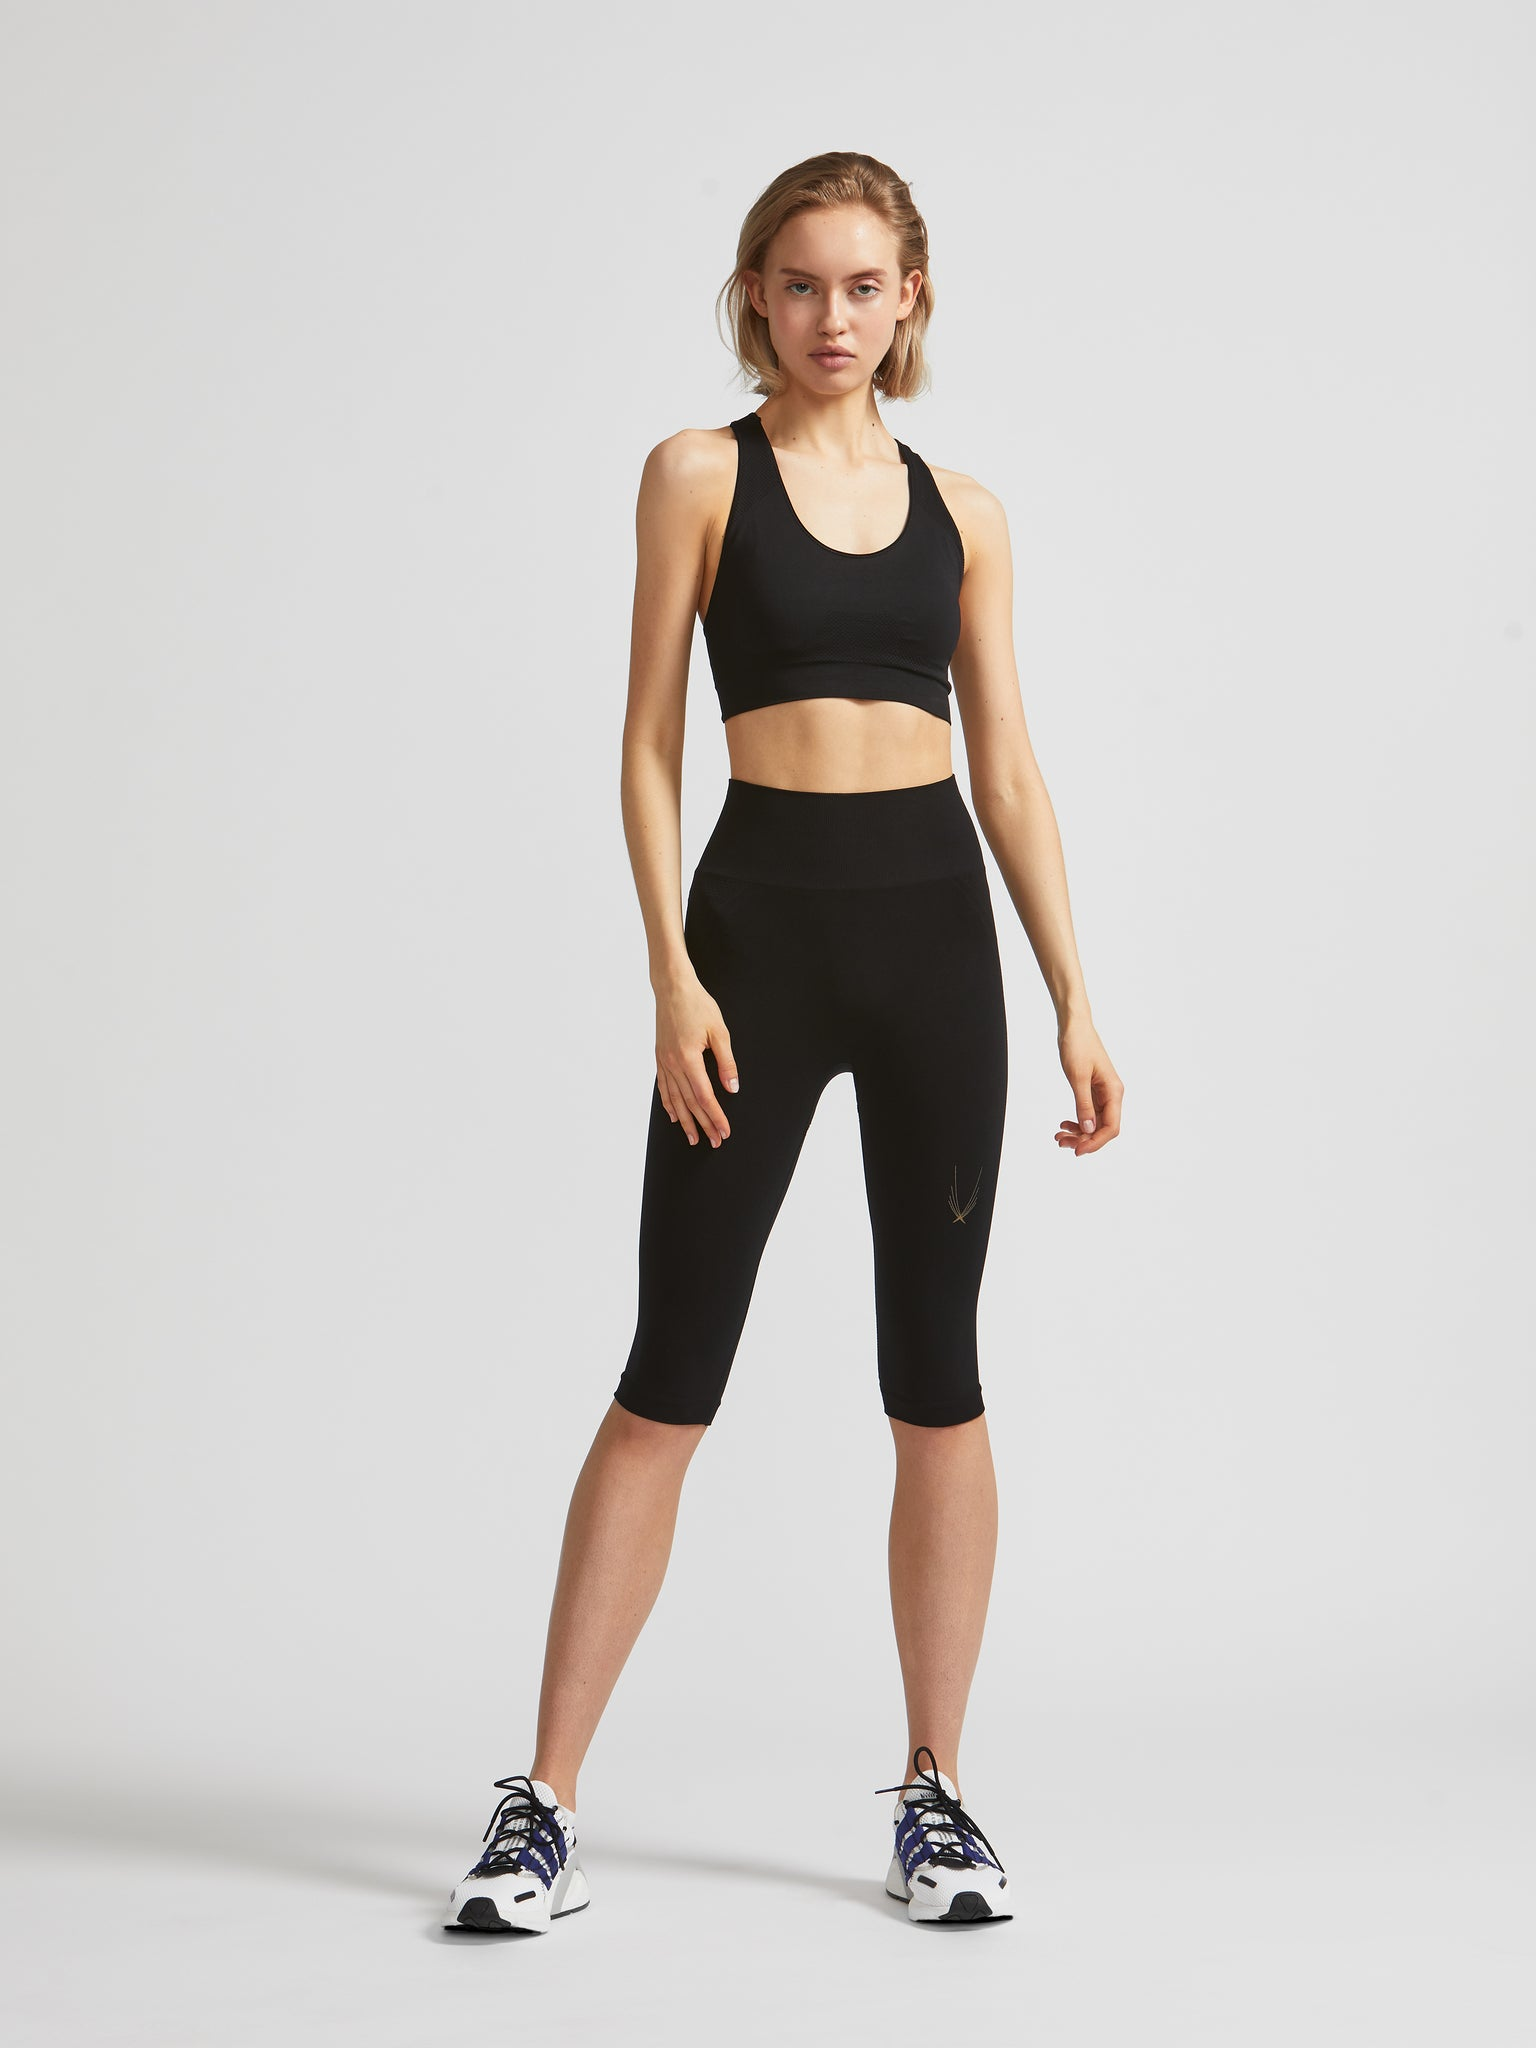 high waisted seamless black capri leggings with breathable panels. Ideal for yoga, Pilates, barre